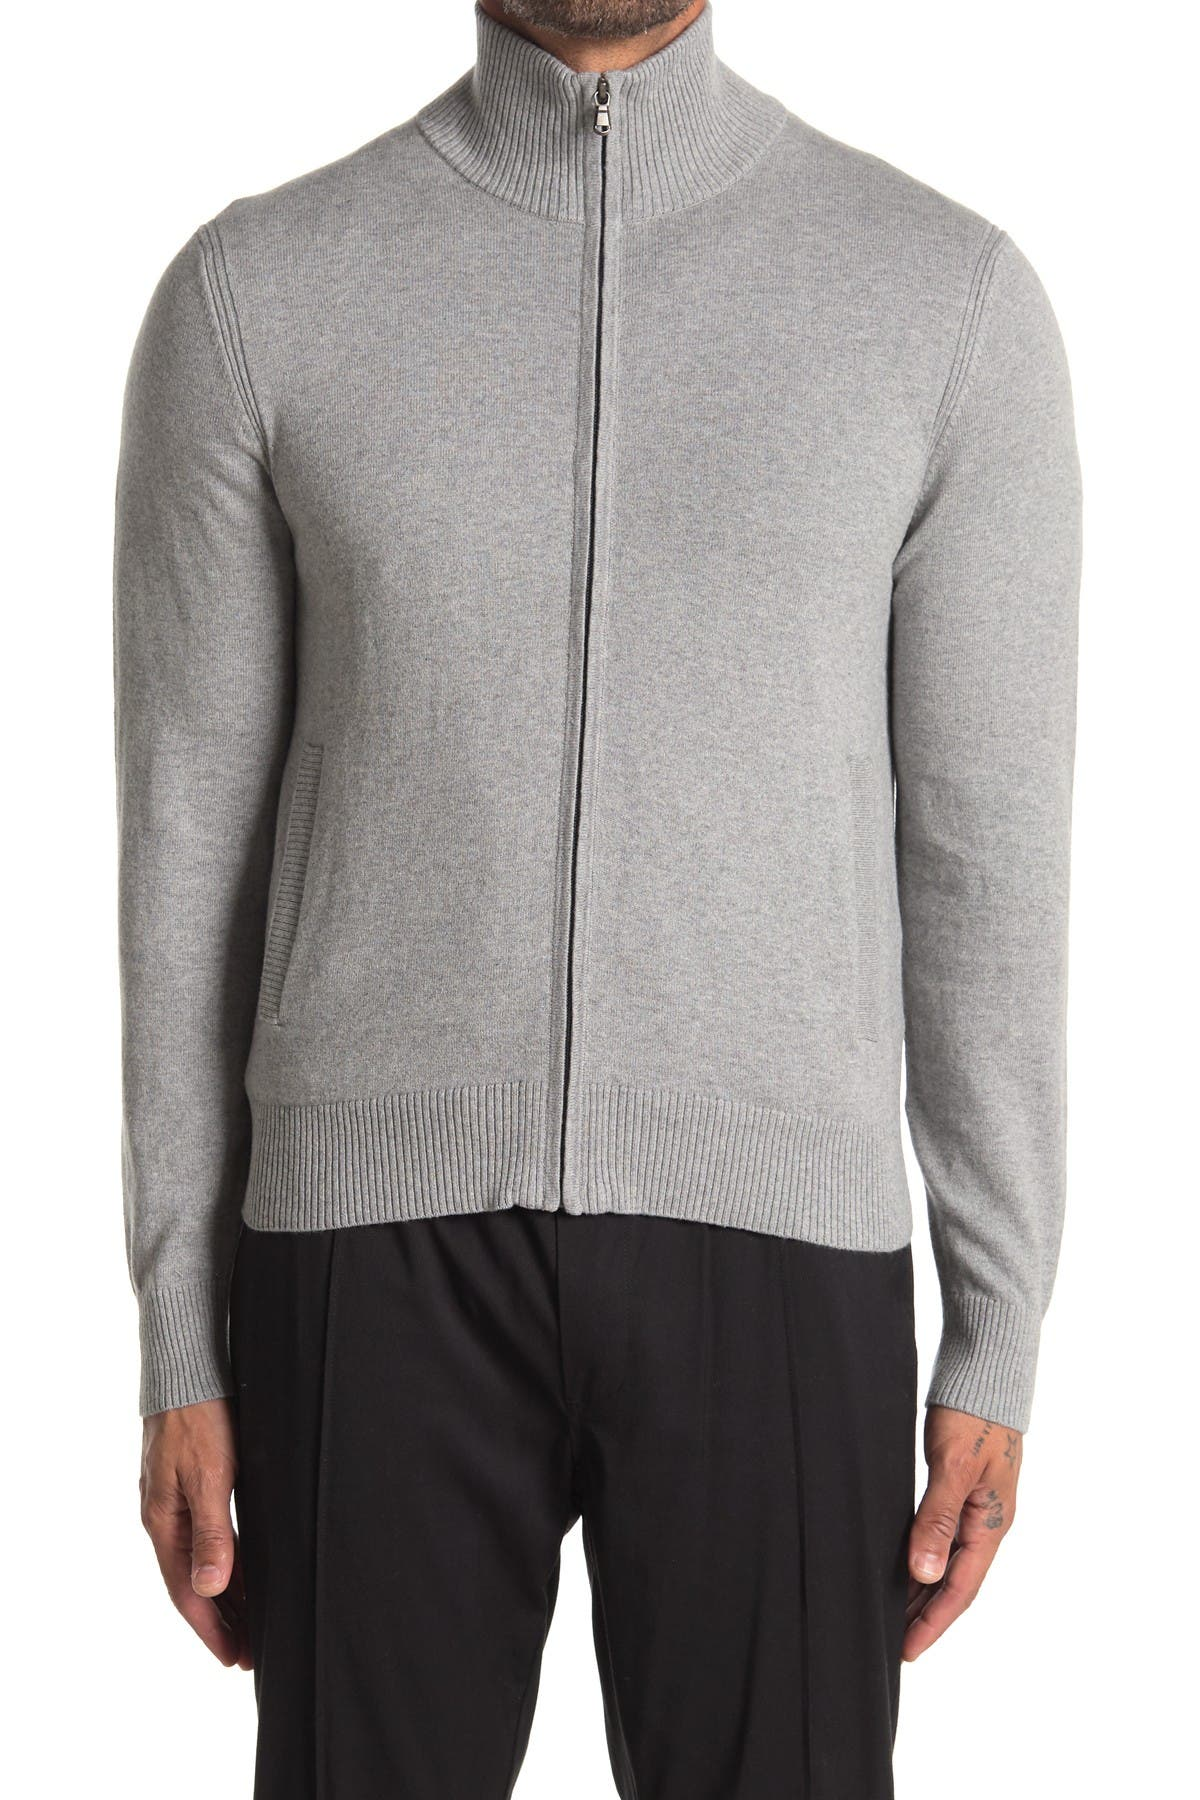 Image of AMICALE Full Zip Cotton Cashmere Blend Sweater